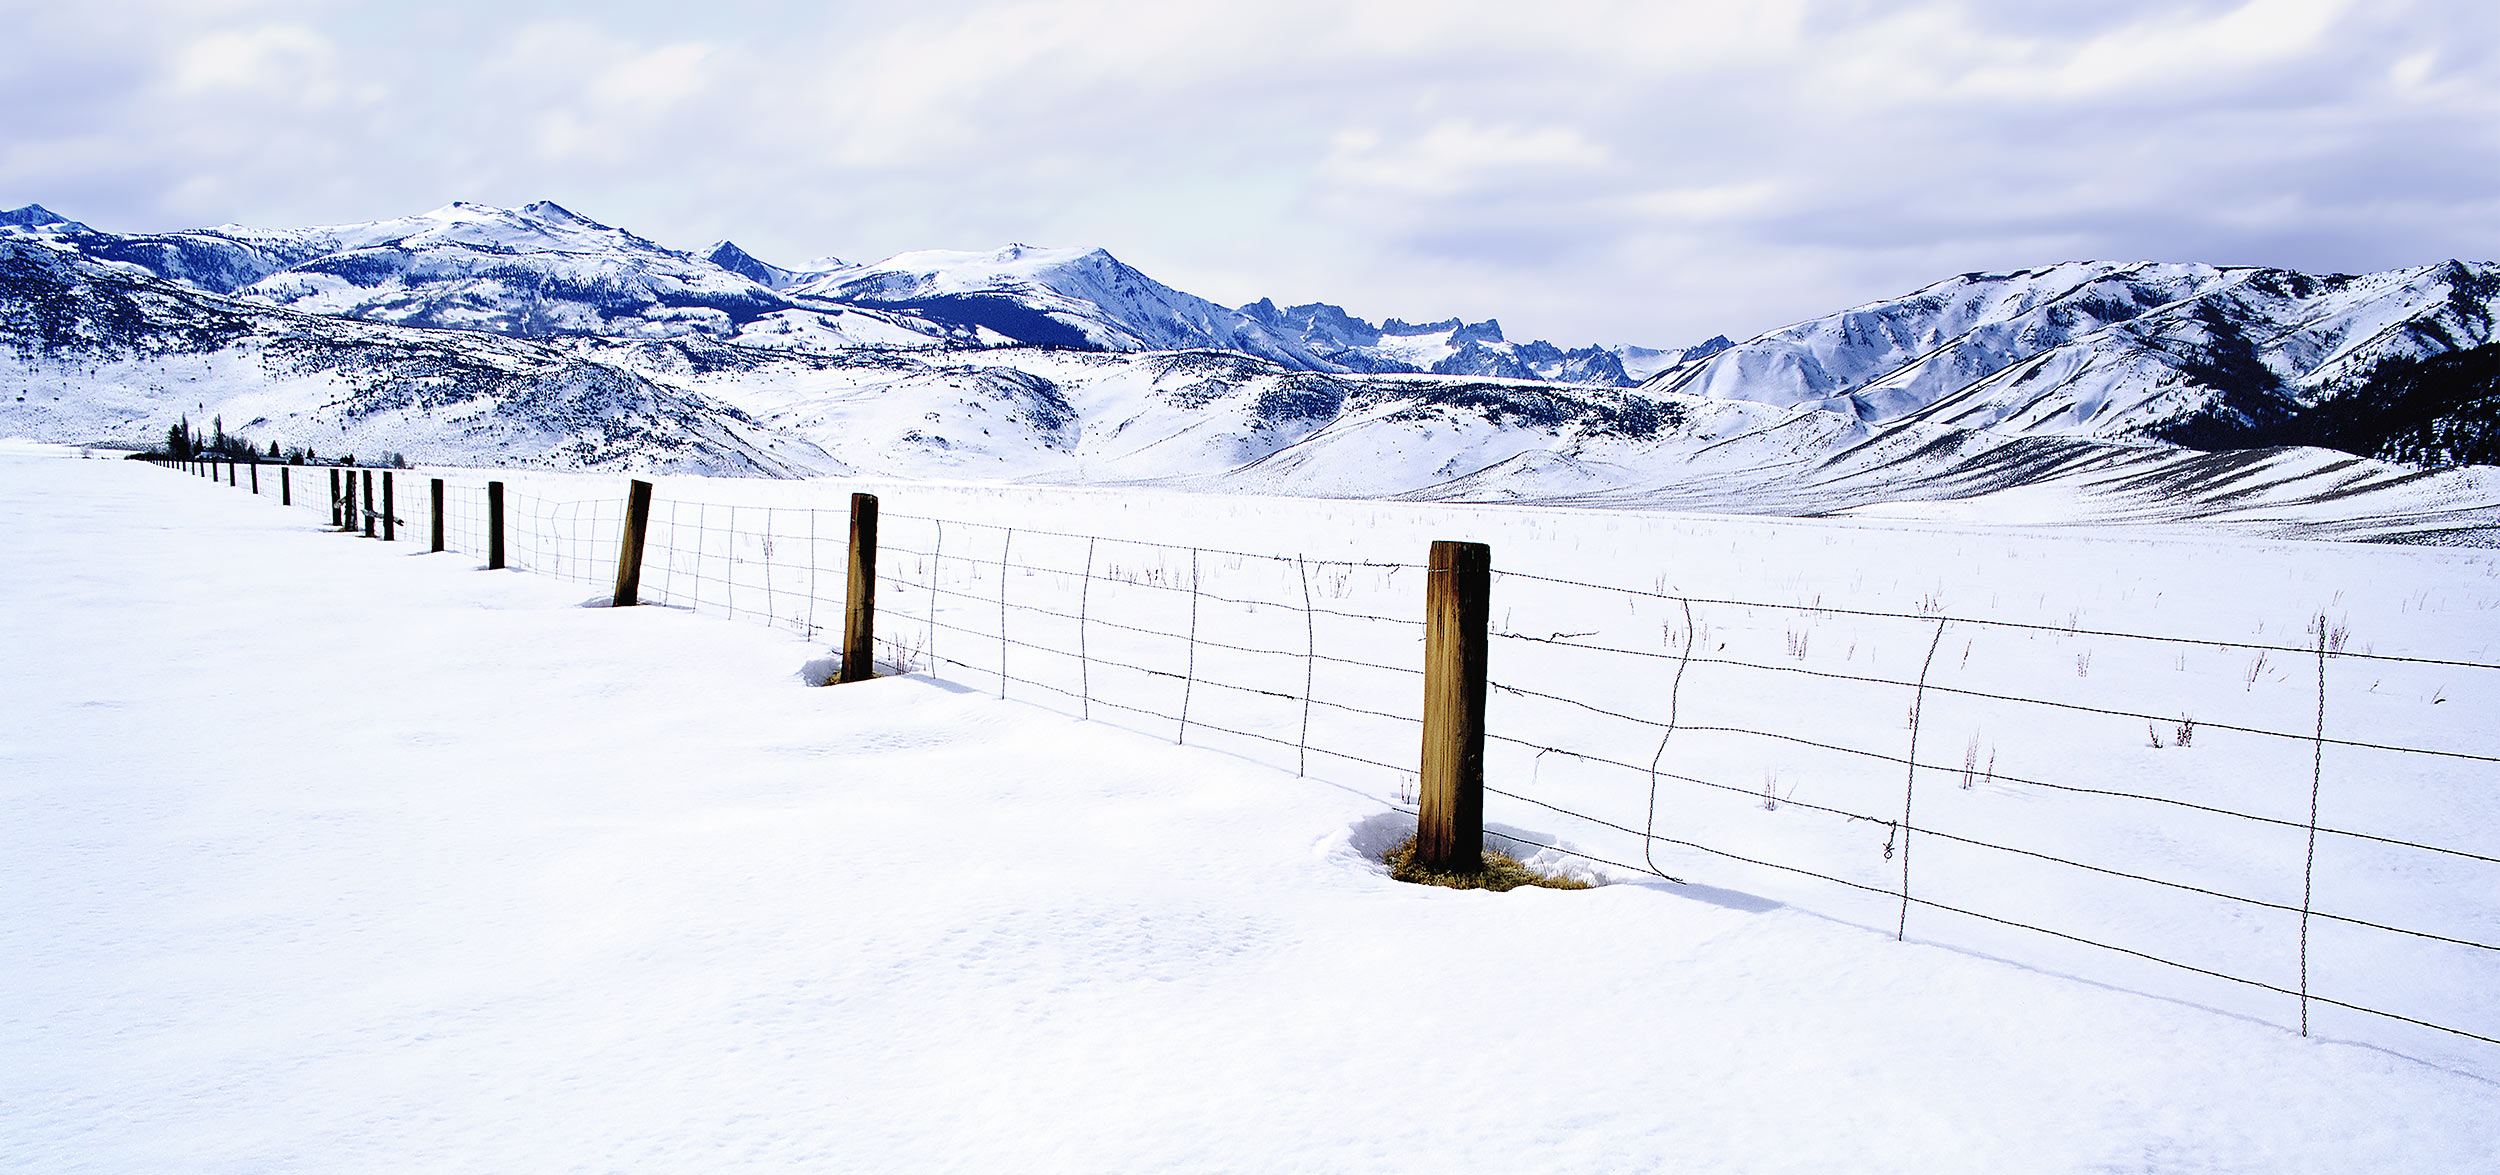 Ranch fence in Snowscape in Bridgeport, California